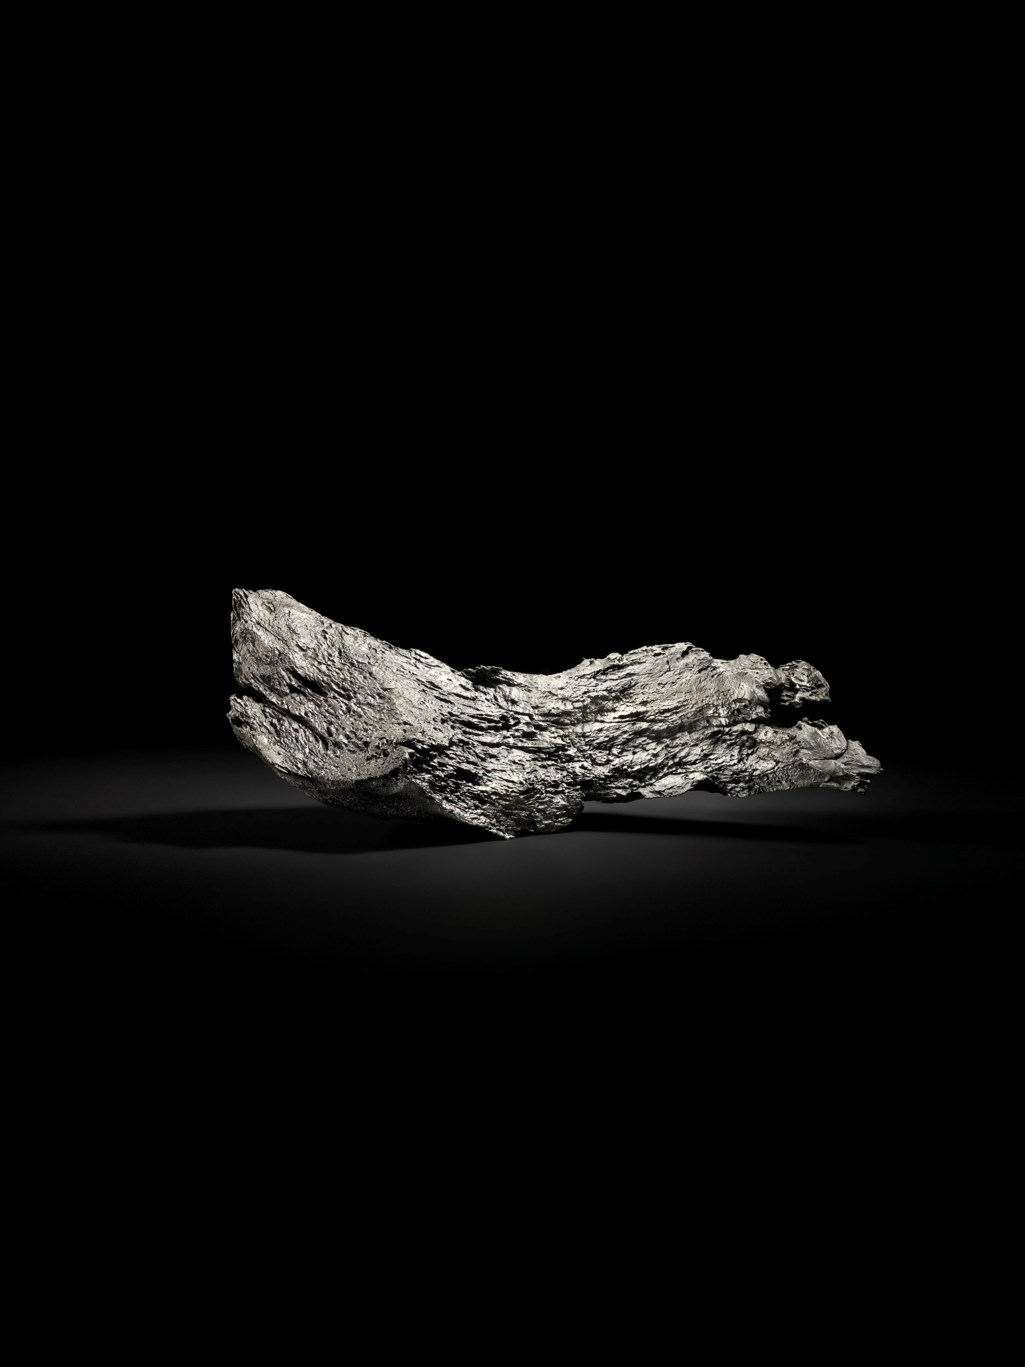 A DRONINO METEORITE — EXTRATERRESTRIAL ZOOMORPHIC TABLETOP SCULPTURE